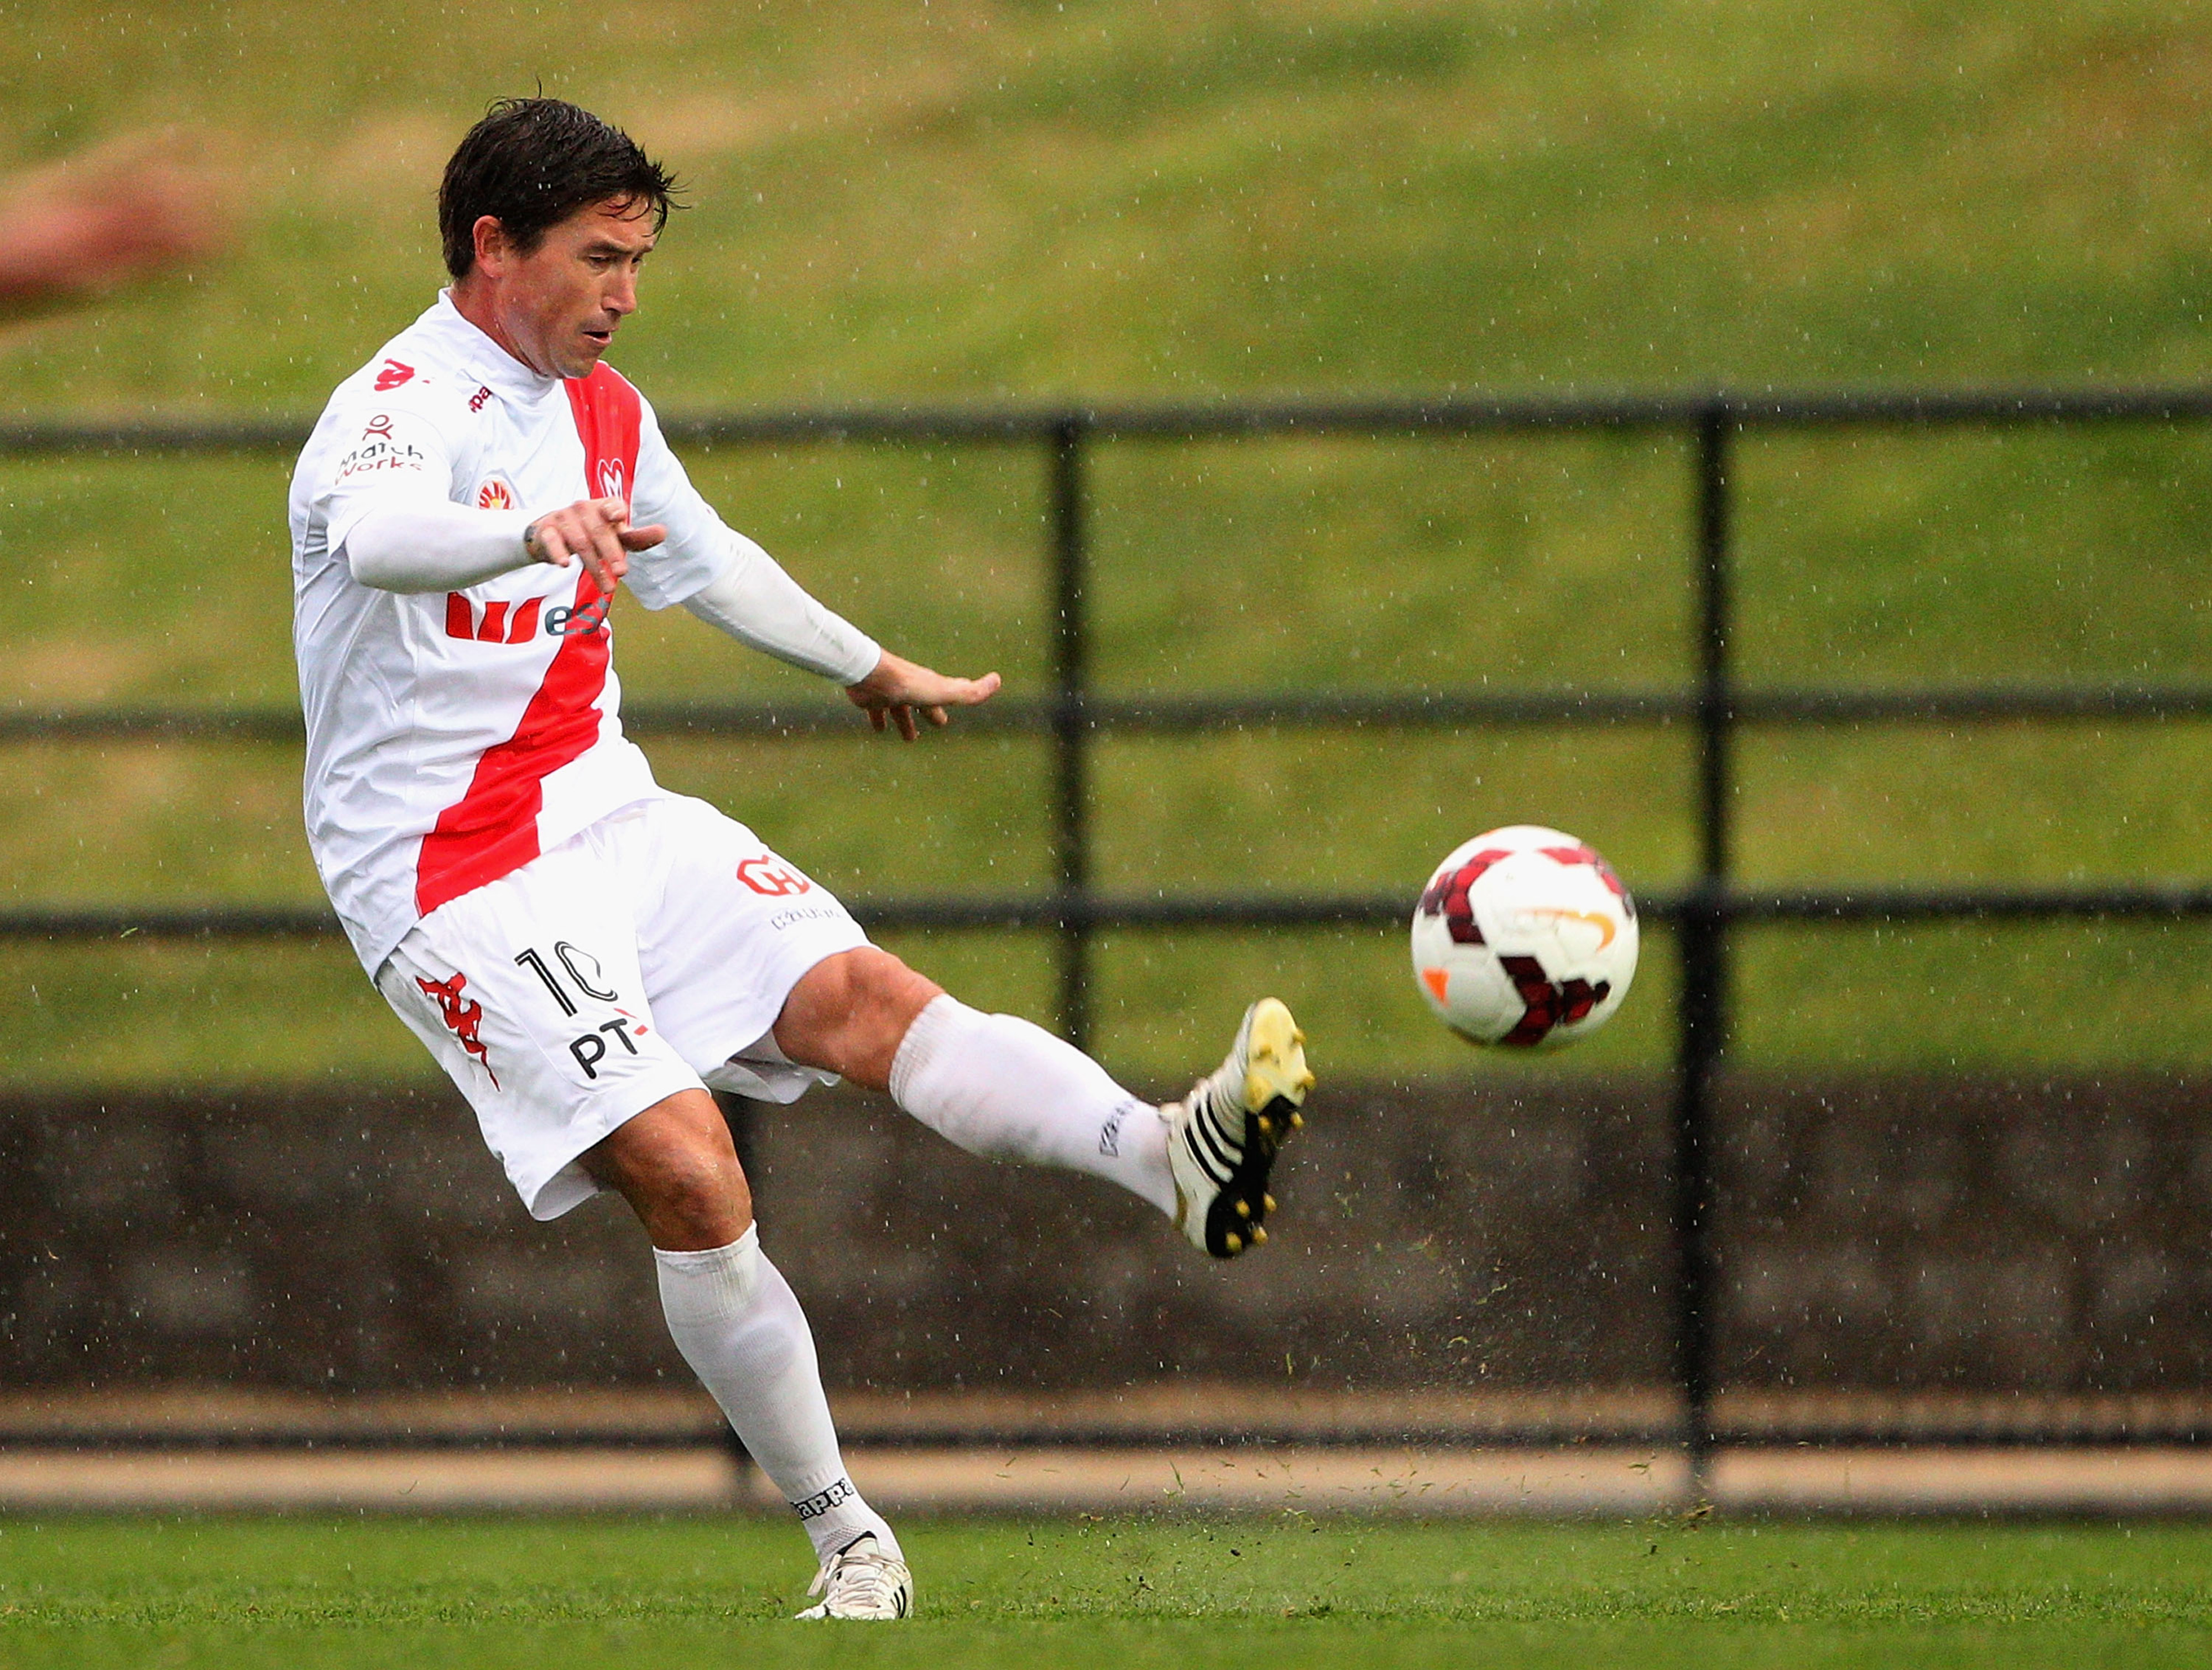 Rosters settling as A-League season approaches